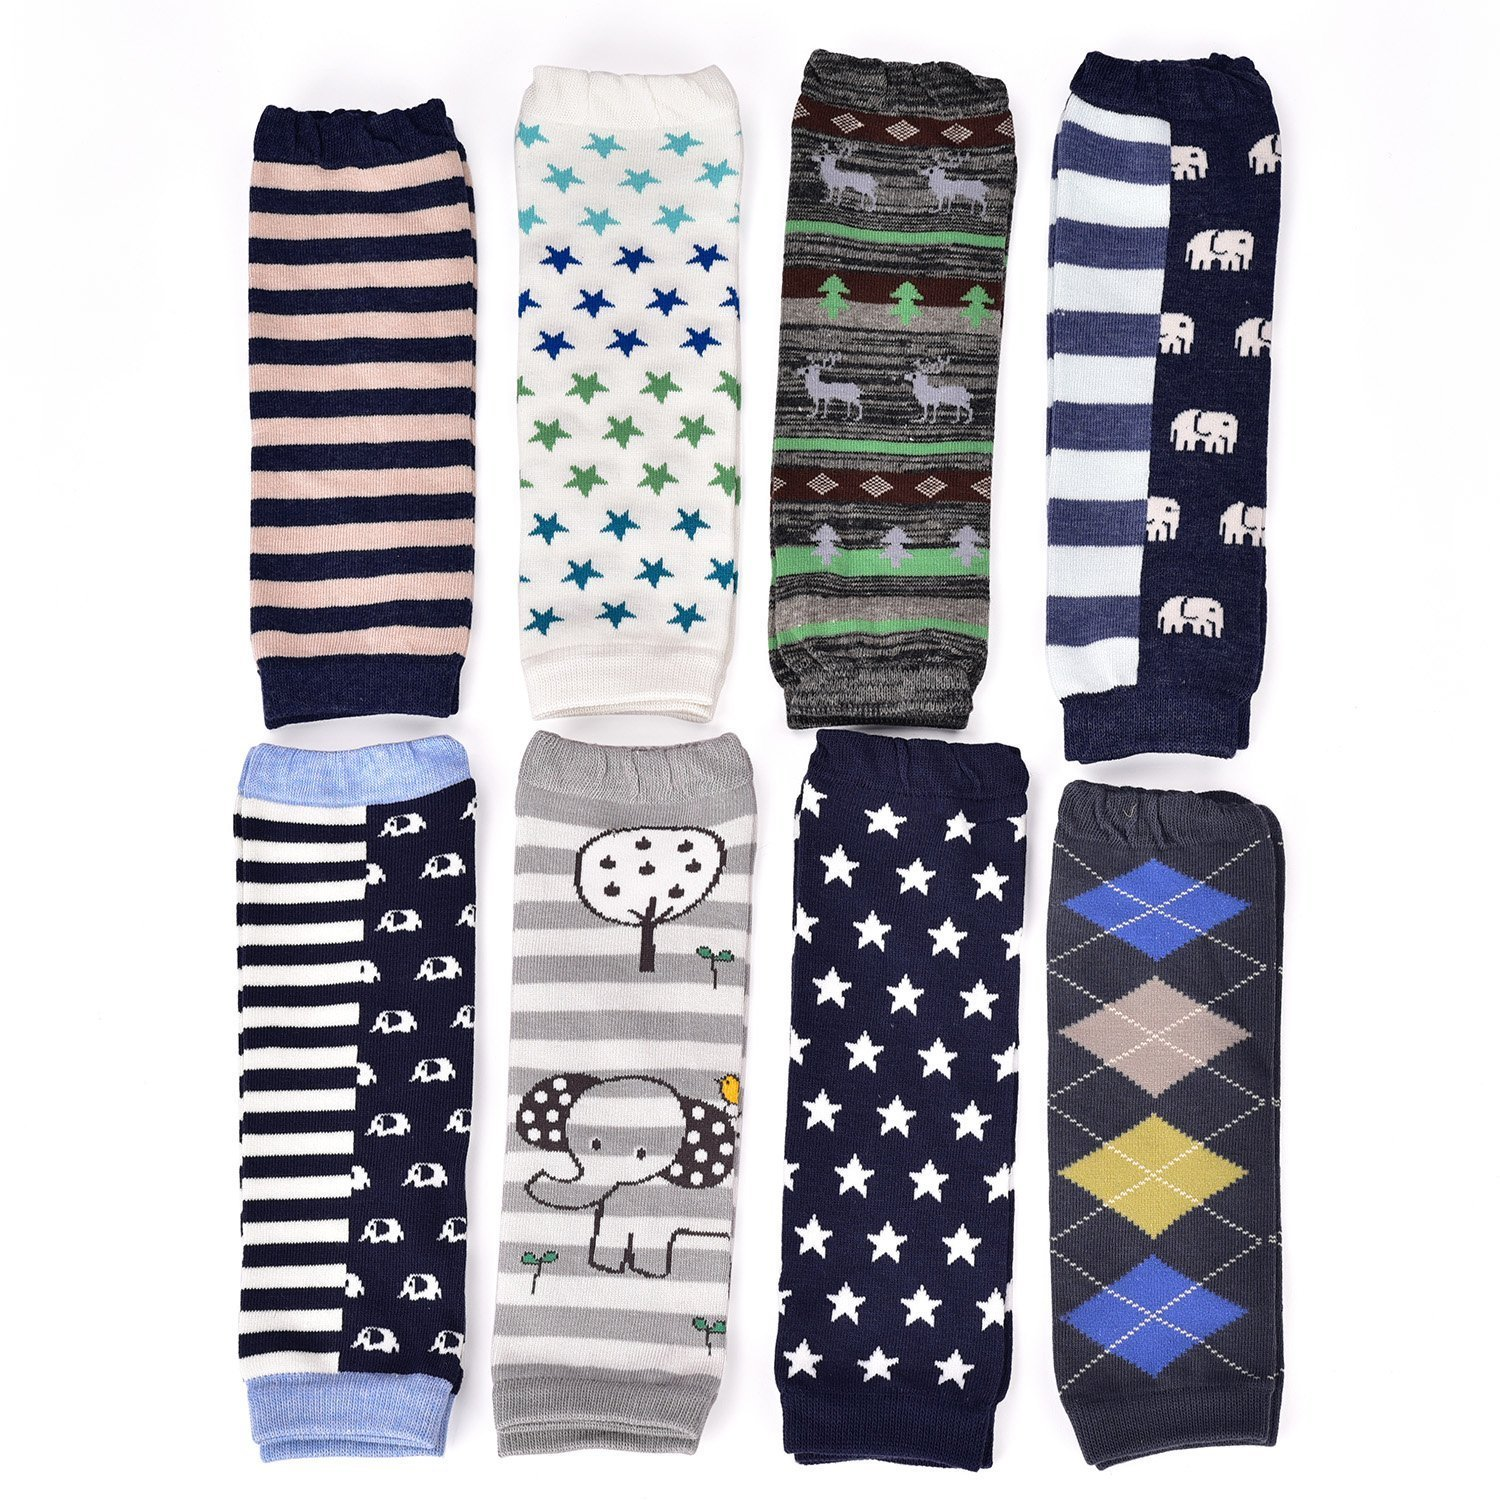 6 Pairs Toddler Boys Leg Warmers, Baby Boy Leggings Knee Pads Size 0-6 Months 6-24 Months